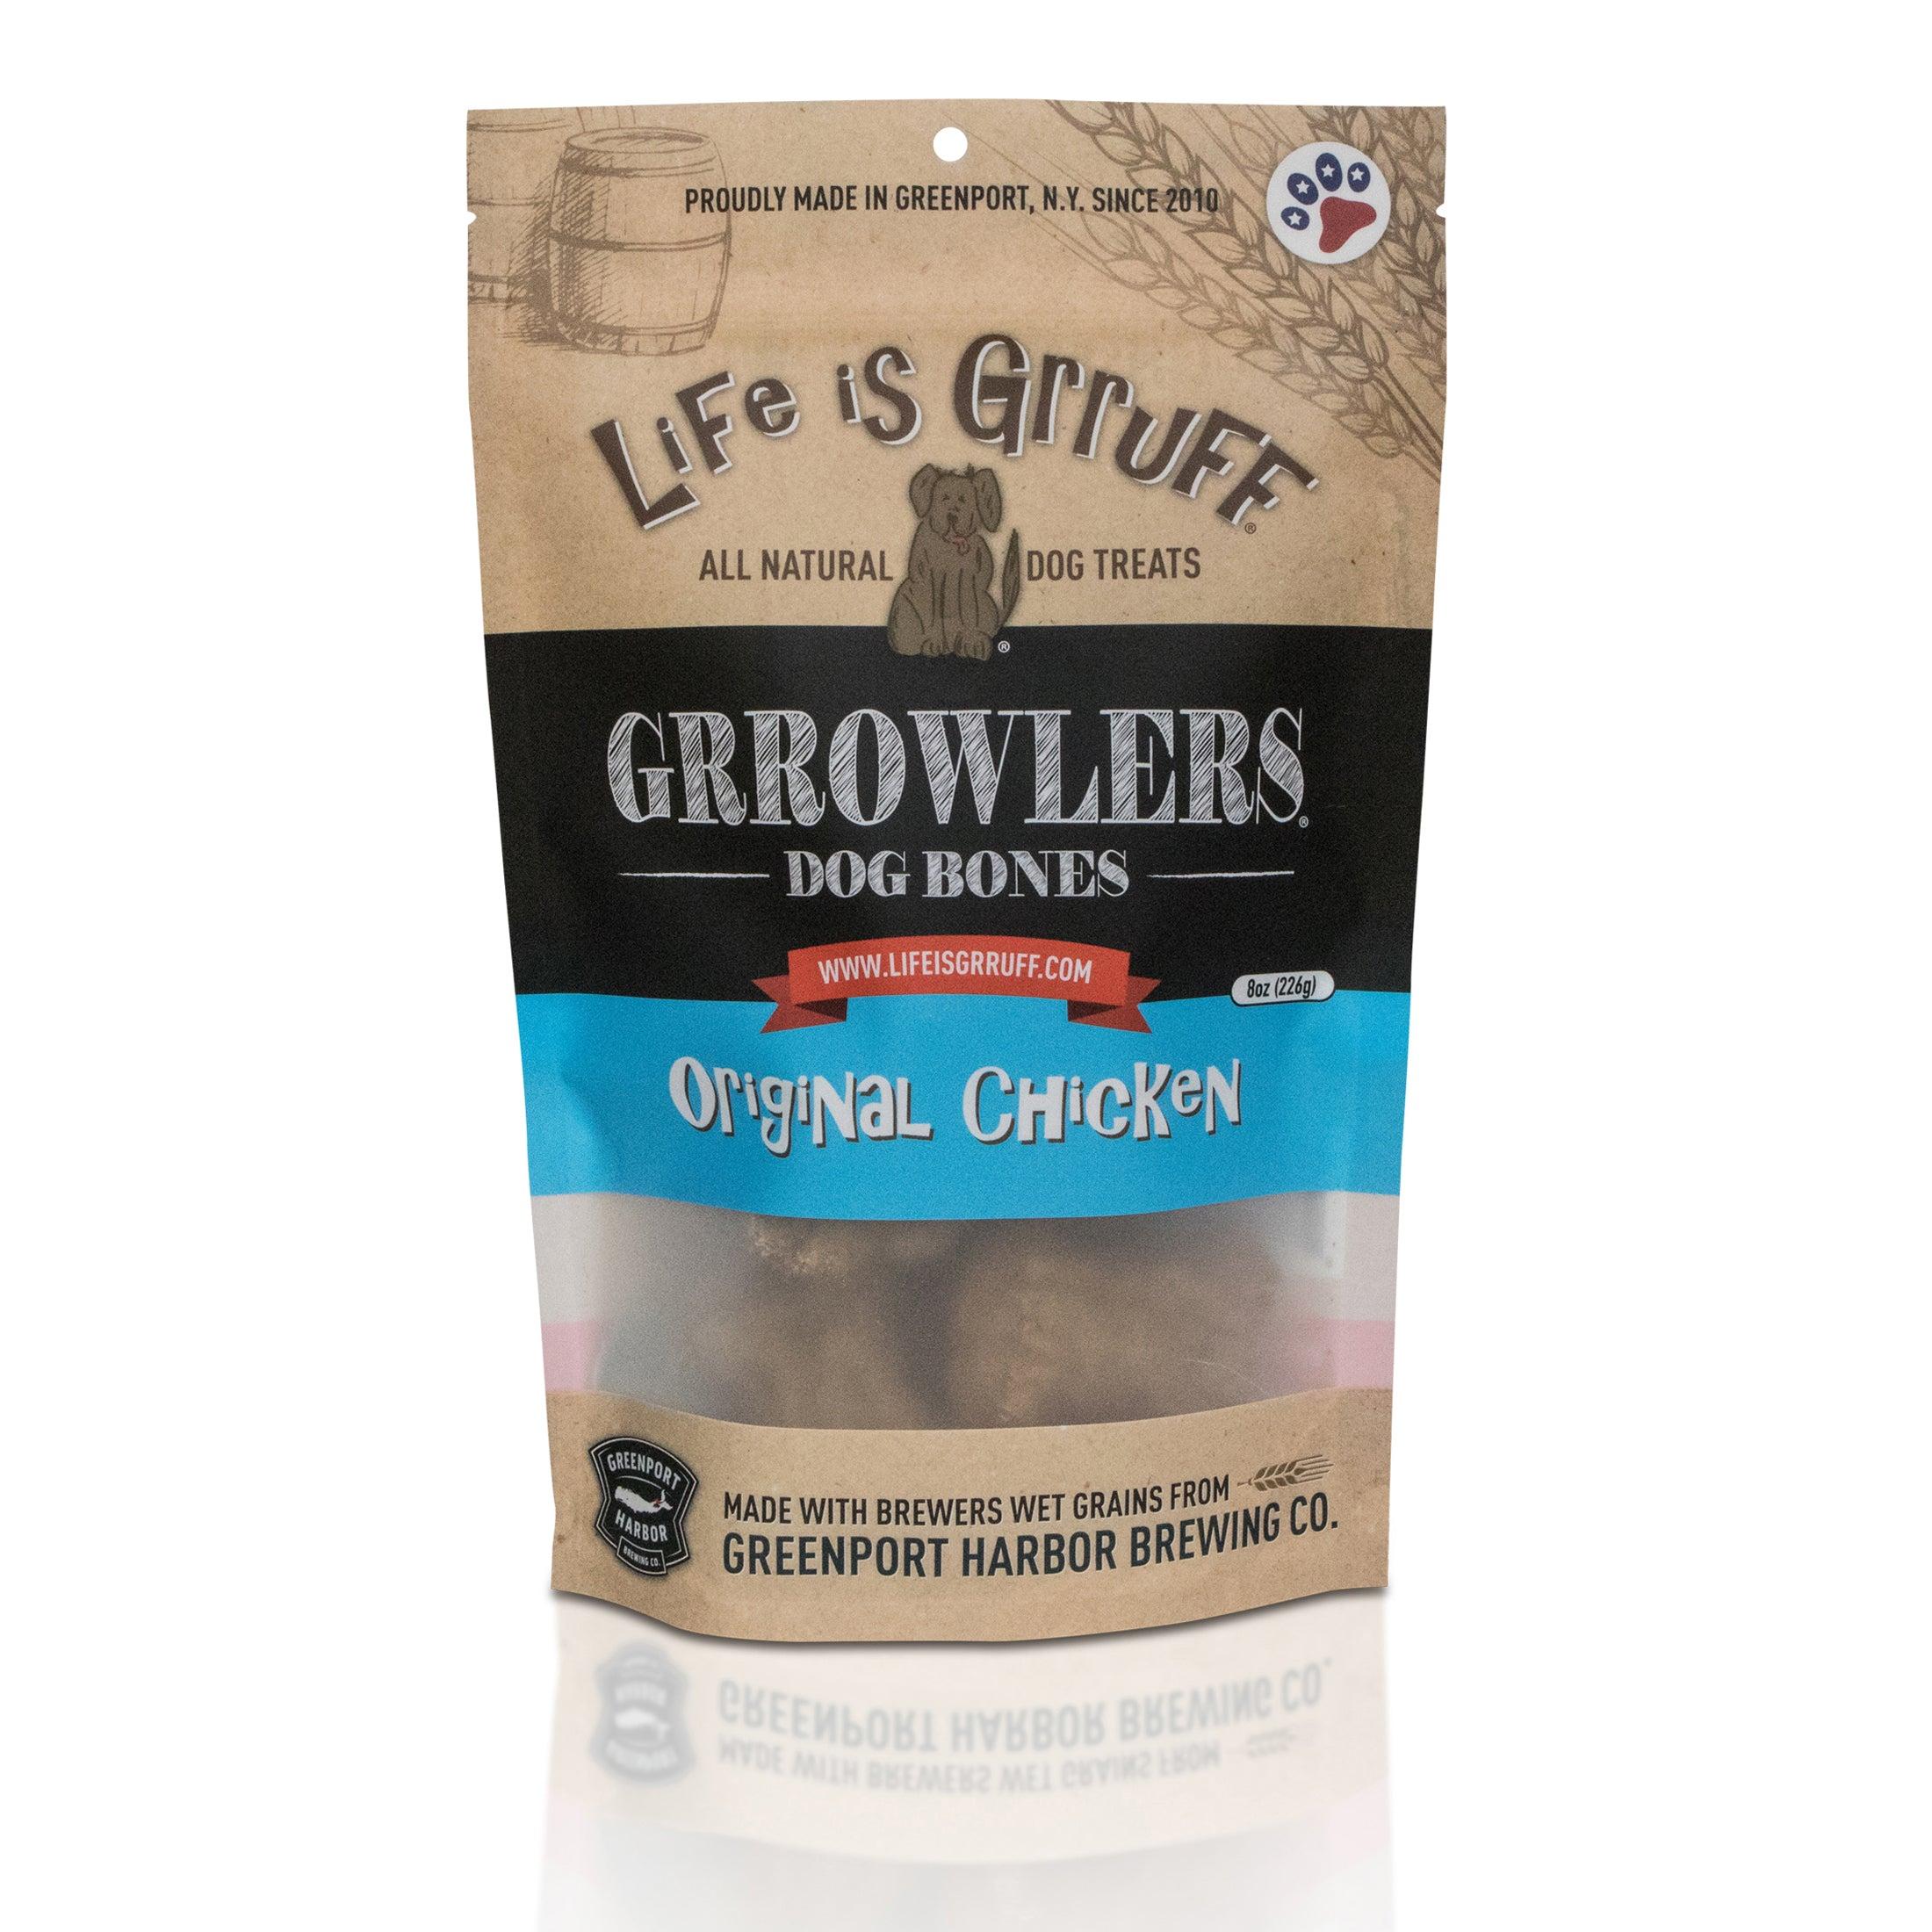 Grrowler's Dog Bones: Original Chicken Liver